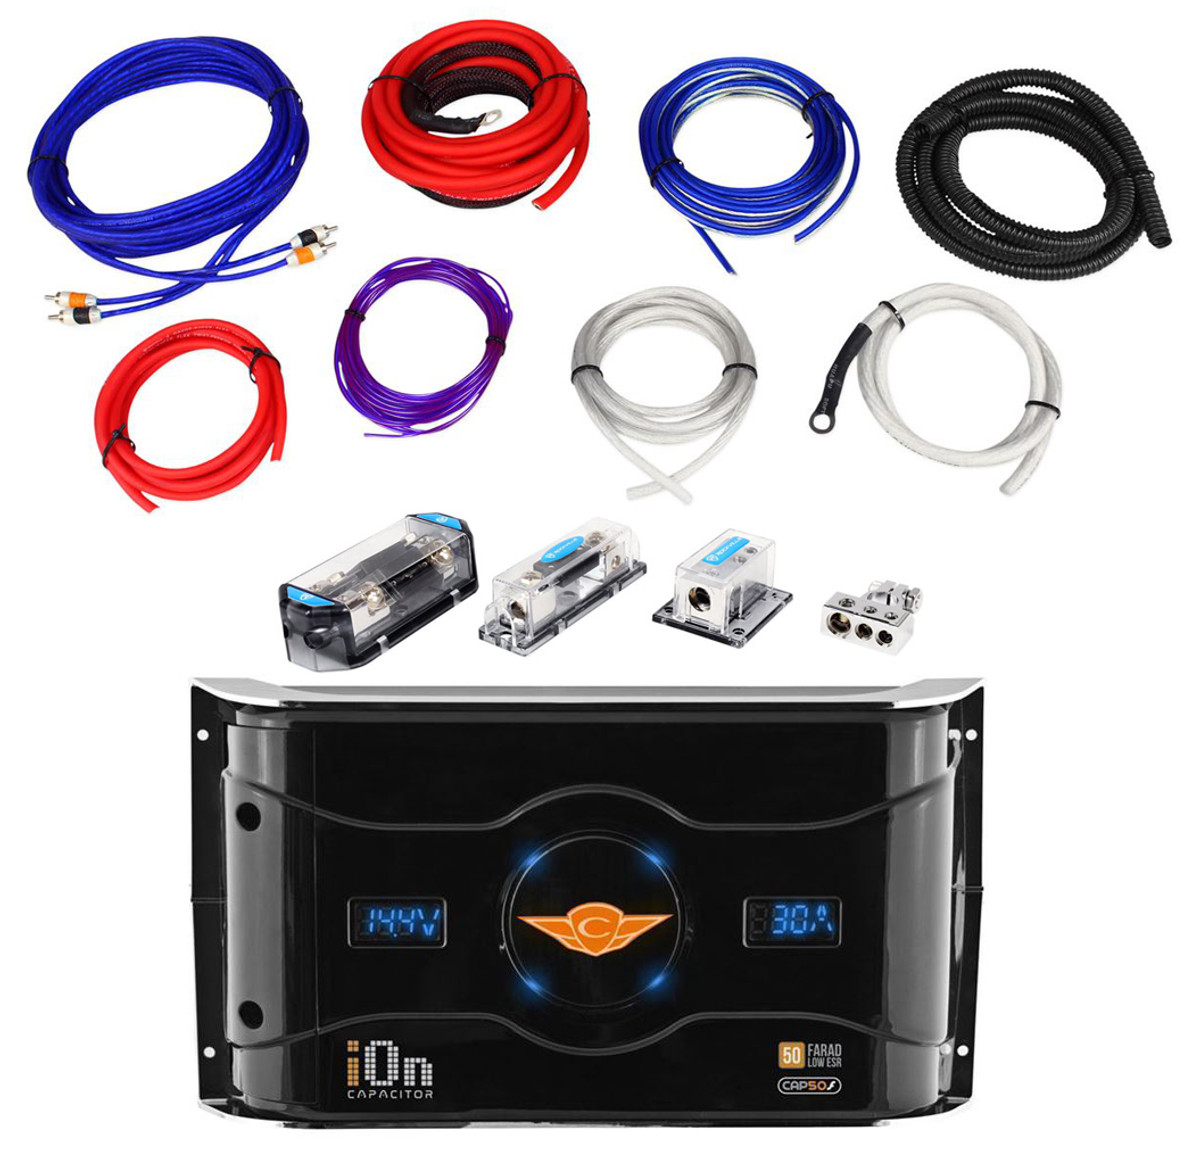 small resolution of rockville rda0 4k 0 4 gauge dual amp install kit cap50f 50 farad dual amp wiring kit with capacitor